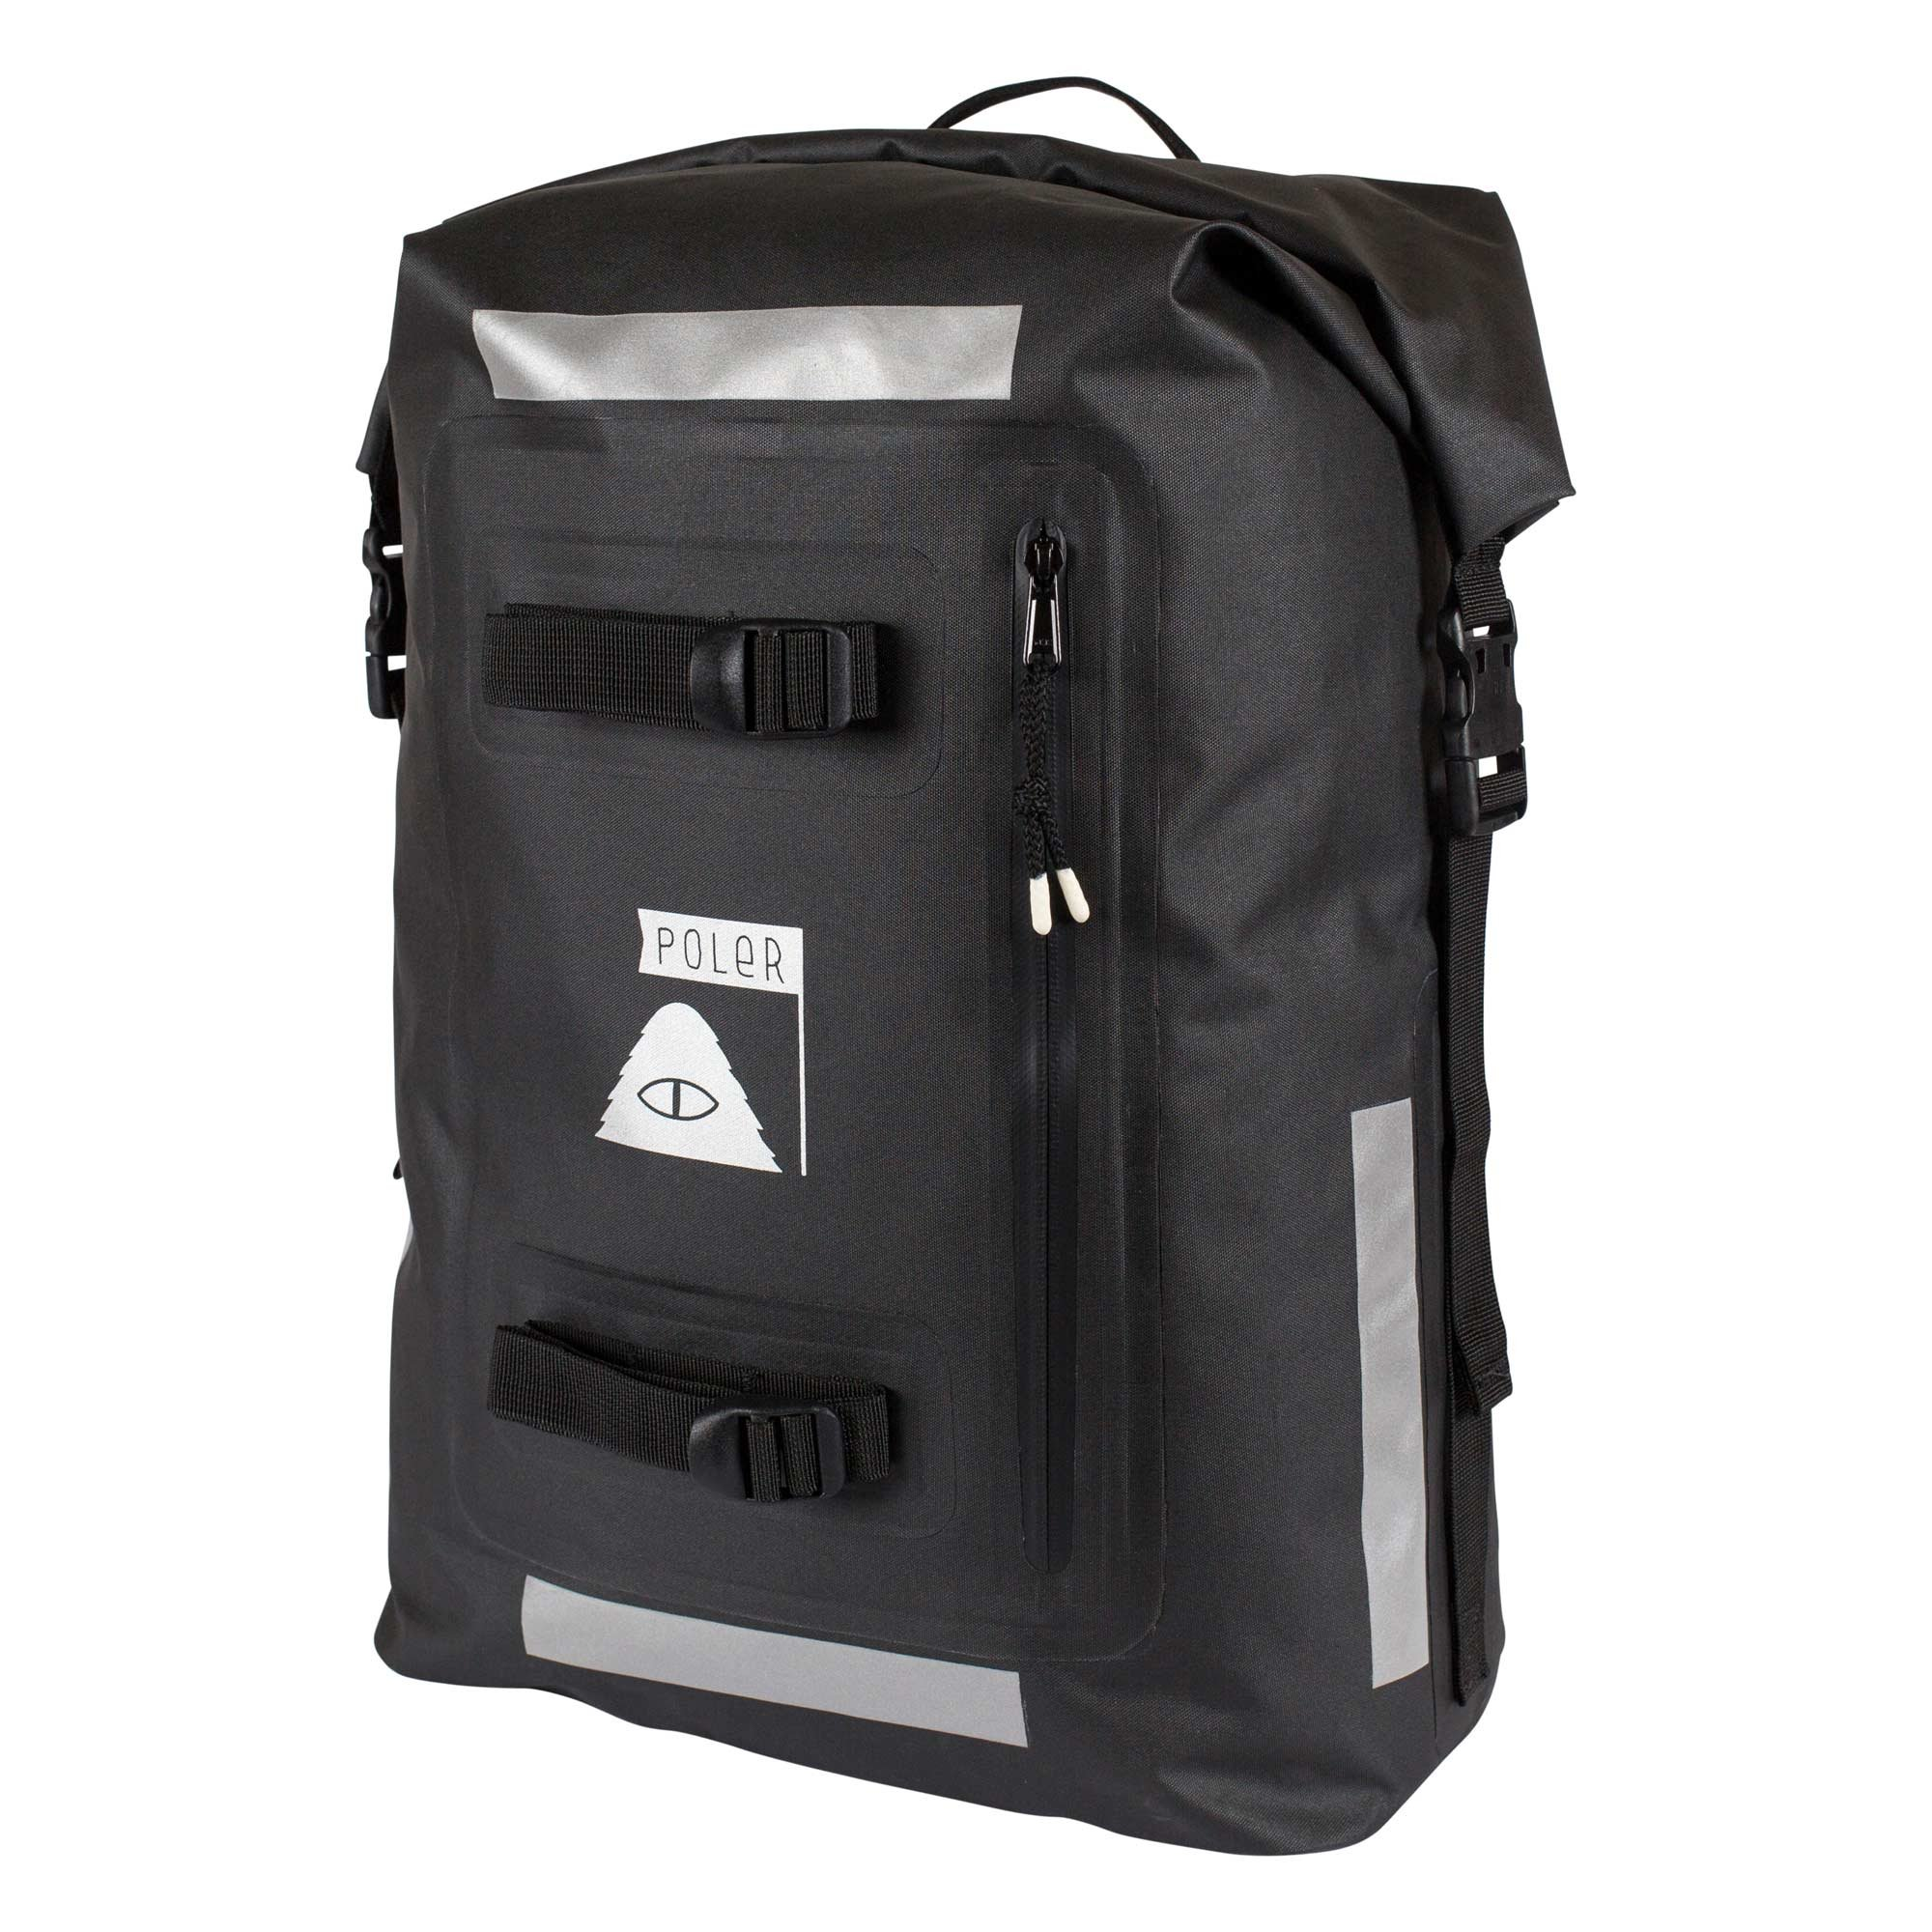 Poler High & Dry Rolltop-blk Accessory, BLACK, ONE